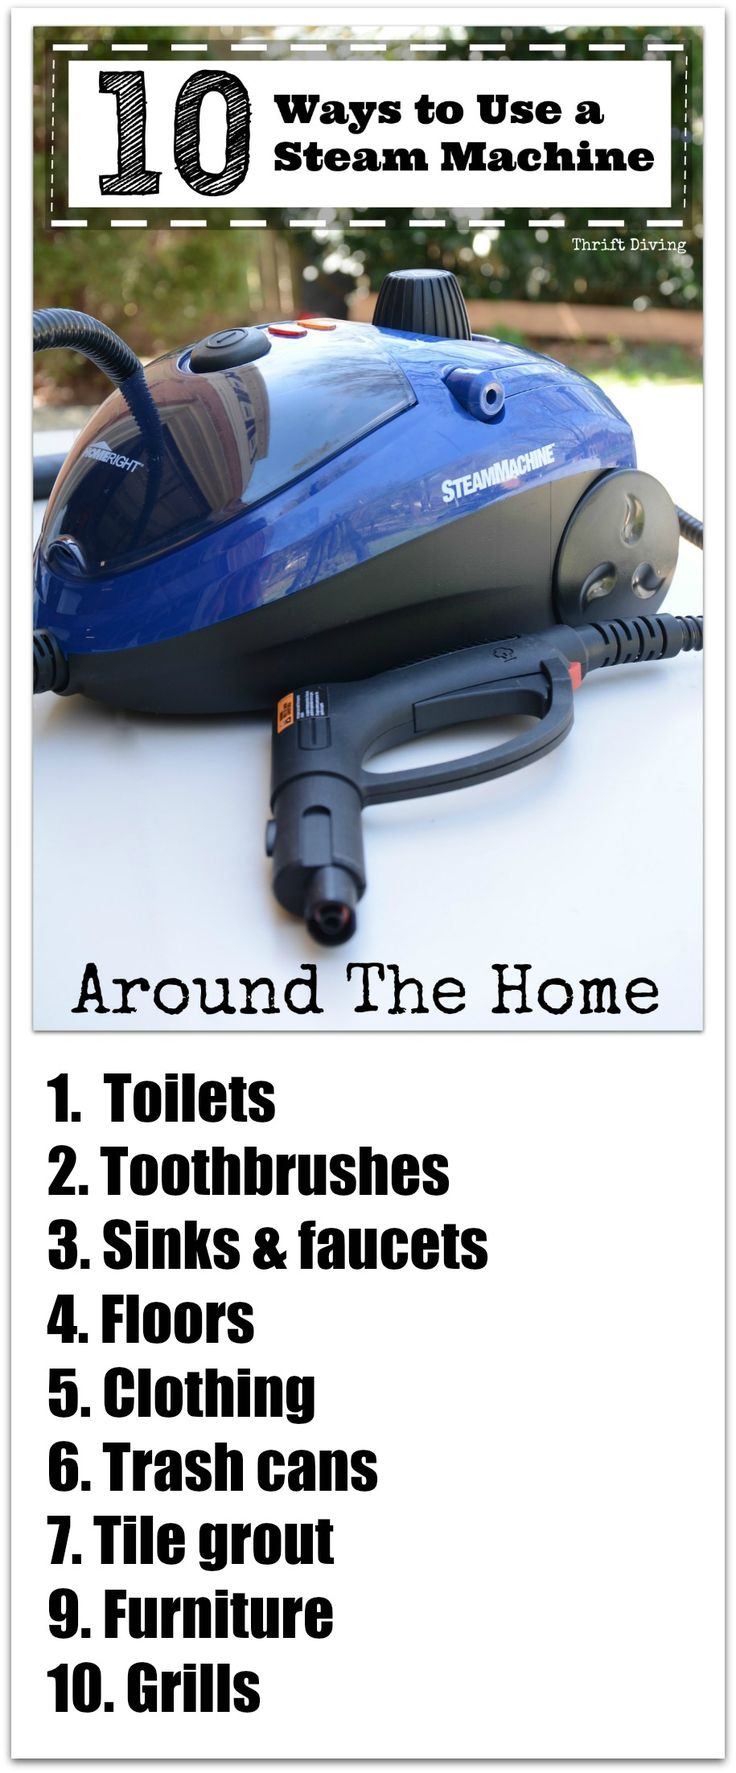 10 ways to use a Homeright Steam Machine steam cleaner around the home. Includes cleaning toilets, disinfecting and cleaning toothbrushes, sinks and faucets, cleaning floors, removing wrinkles from clothing, cleaning trash cans, brightening tile grout, cleaning furniture, and deep cleaning your grill! Watch my full demo and review, plus extra tips for using the Steam Machine! AD